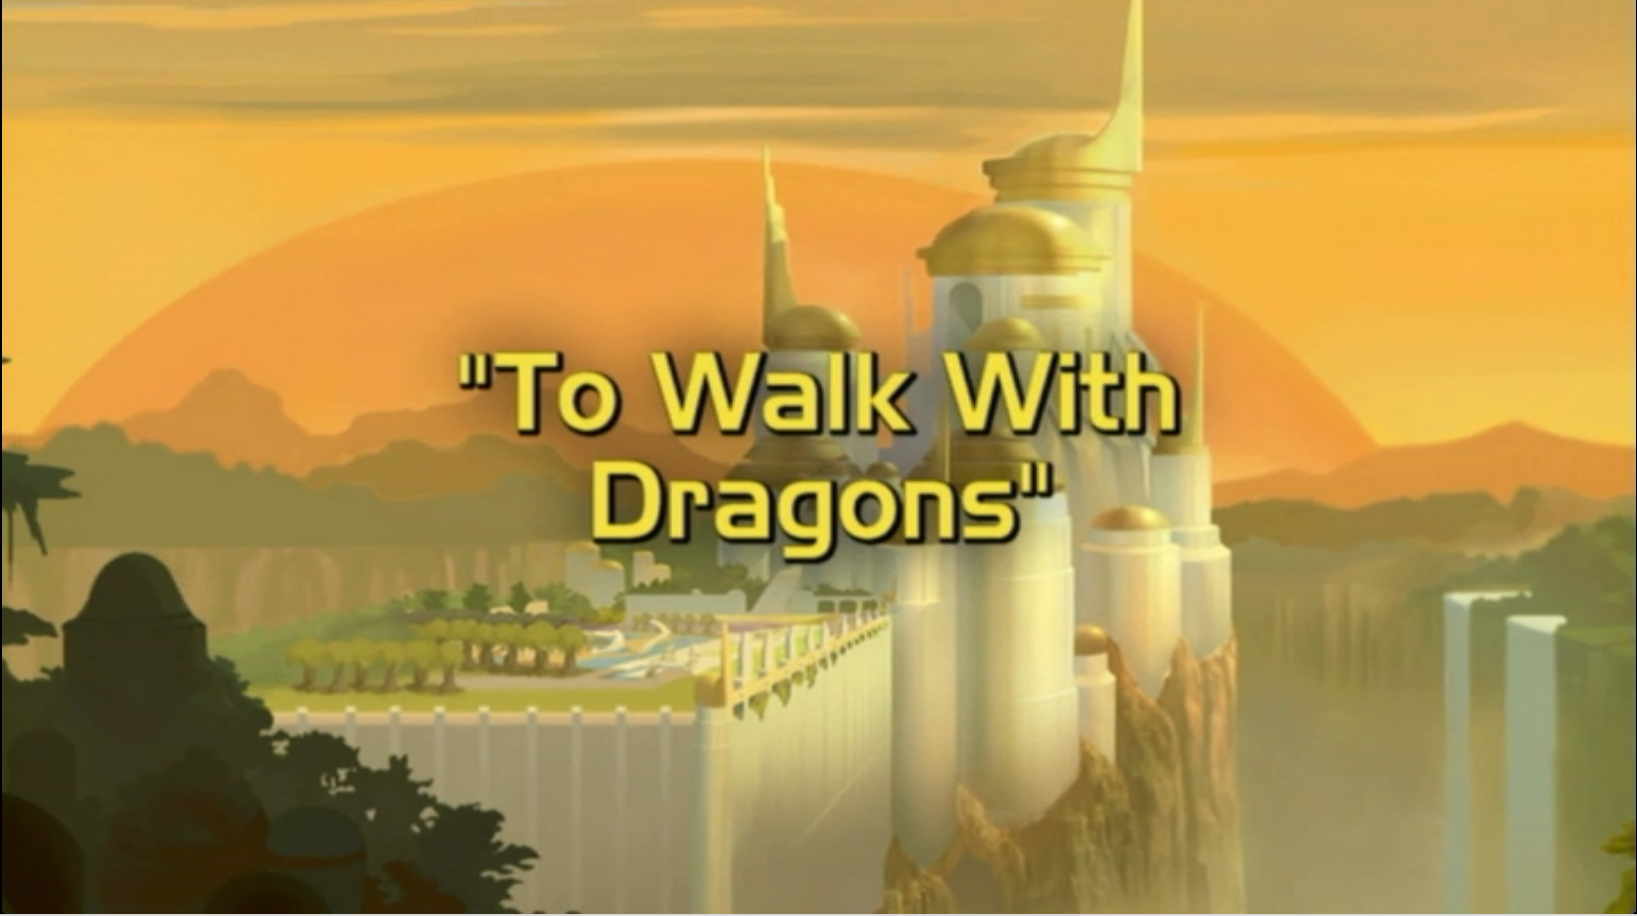 To Walk With Dragons